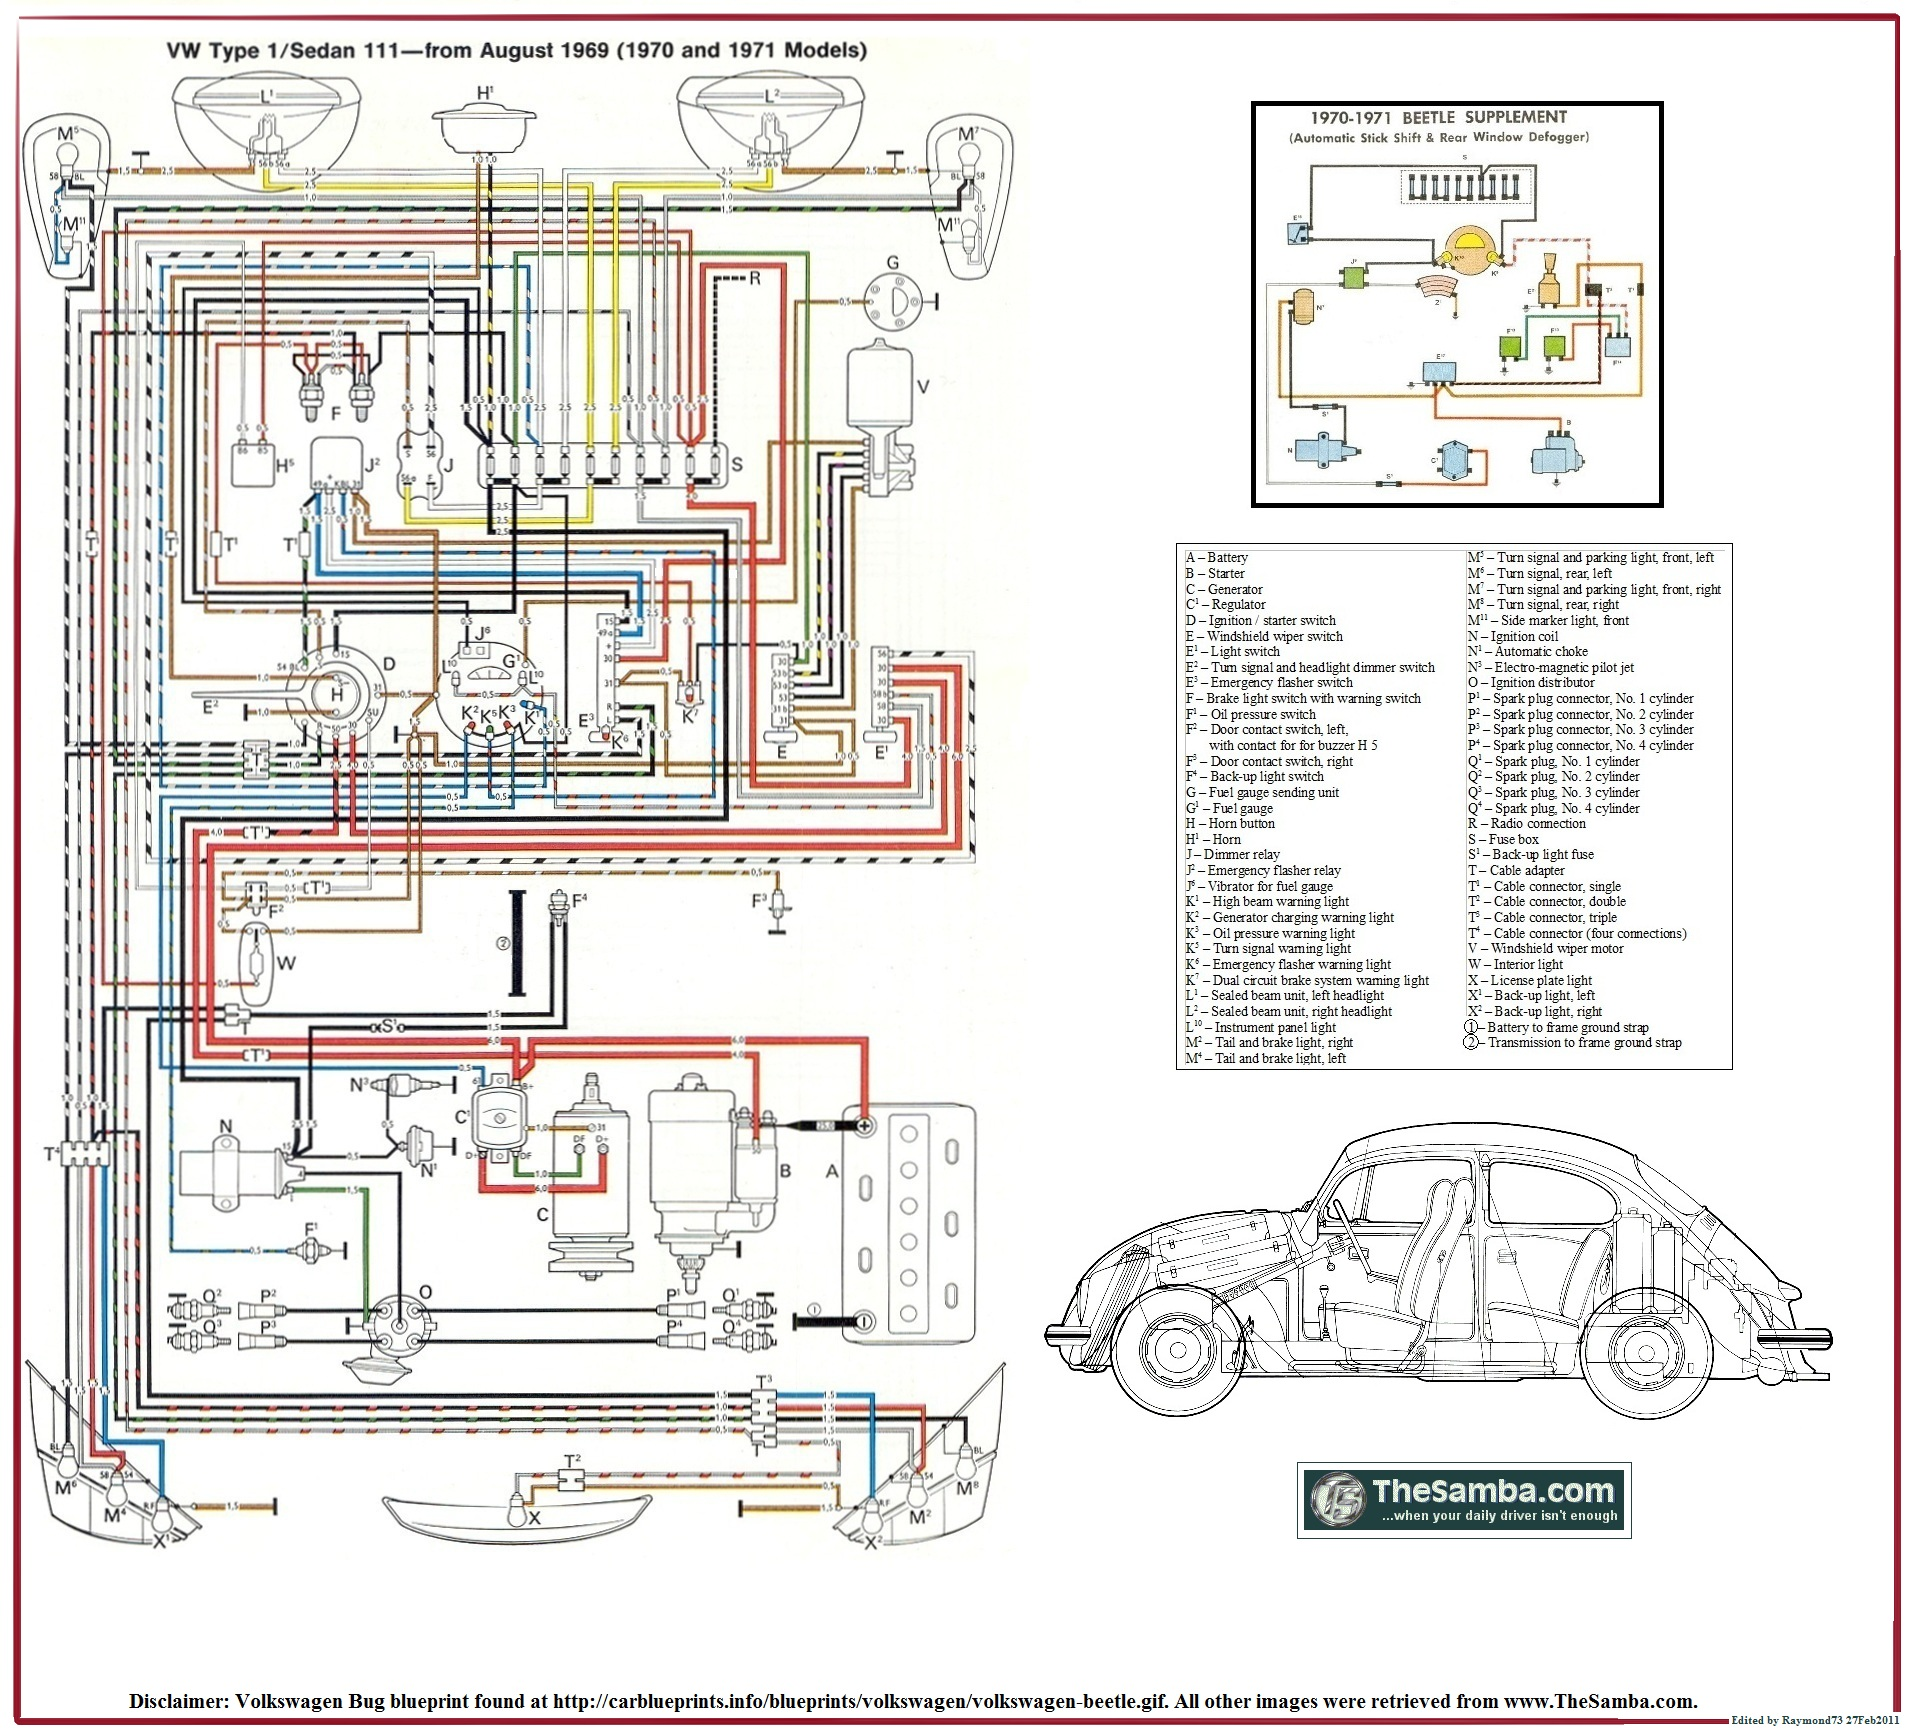 1970_VW_Type_1_Poster thesamba com beetle late model super 1968 up view topic 3 prong headlight wiring diagram at crackthecode.co